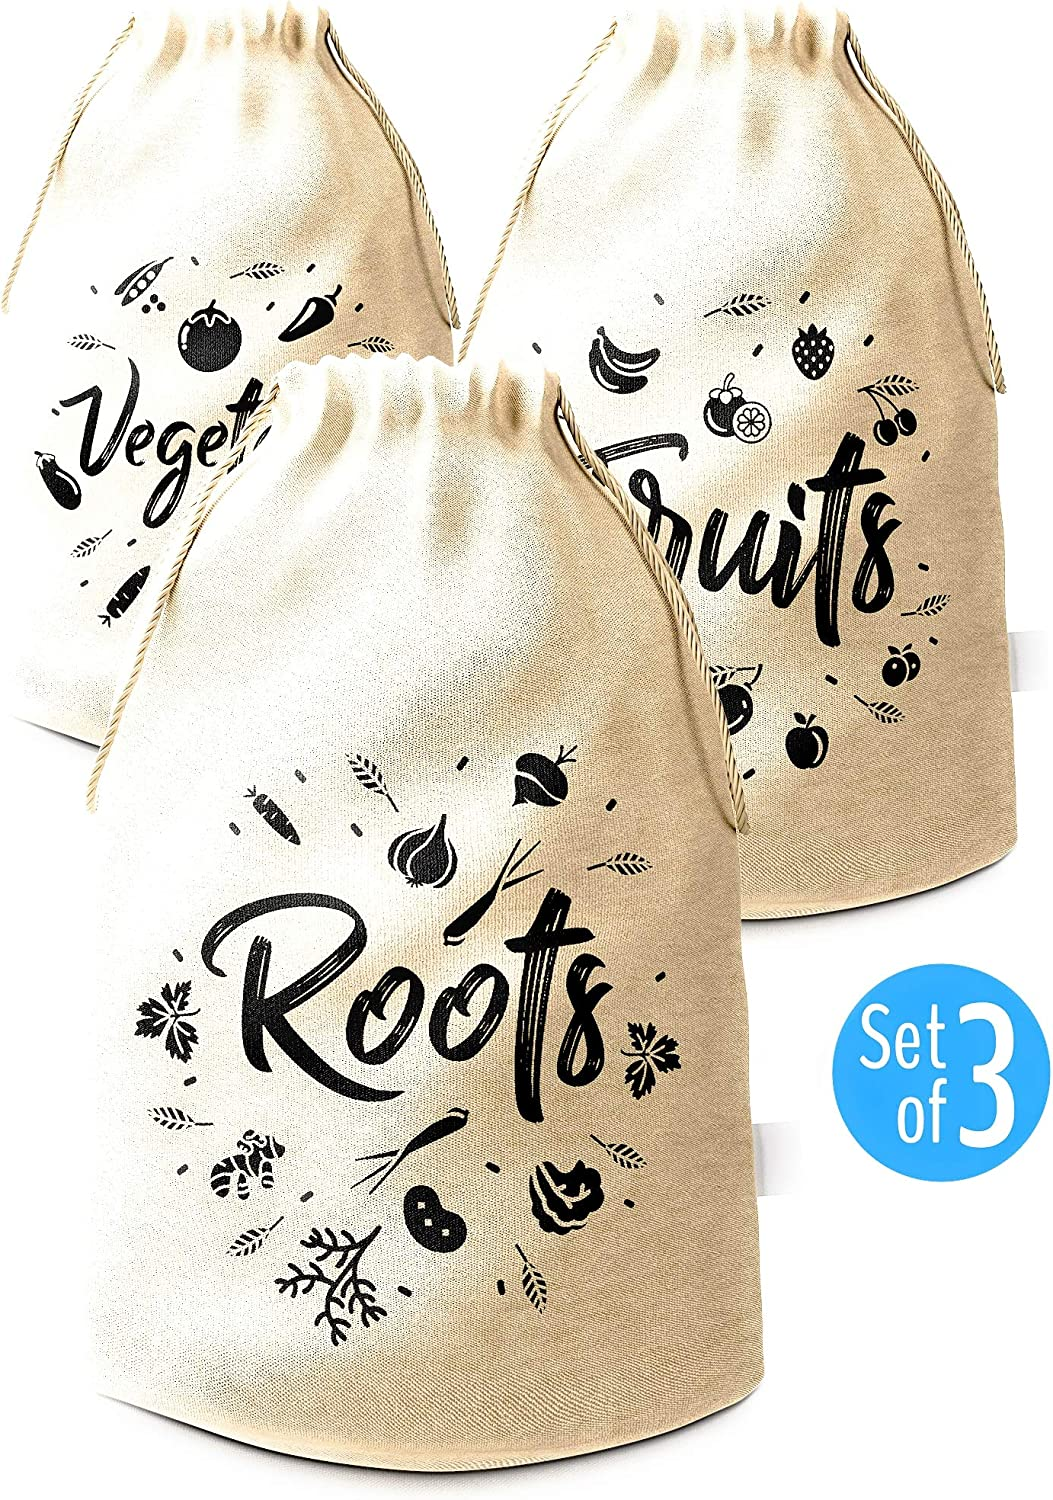 Reusable Produce Bag 3 Packs Cotton Muslin Bags with Drawstring Natural color (7.5 Х 12.5 inches) by Pouch